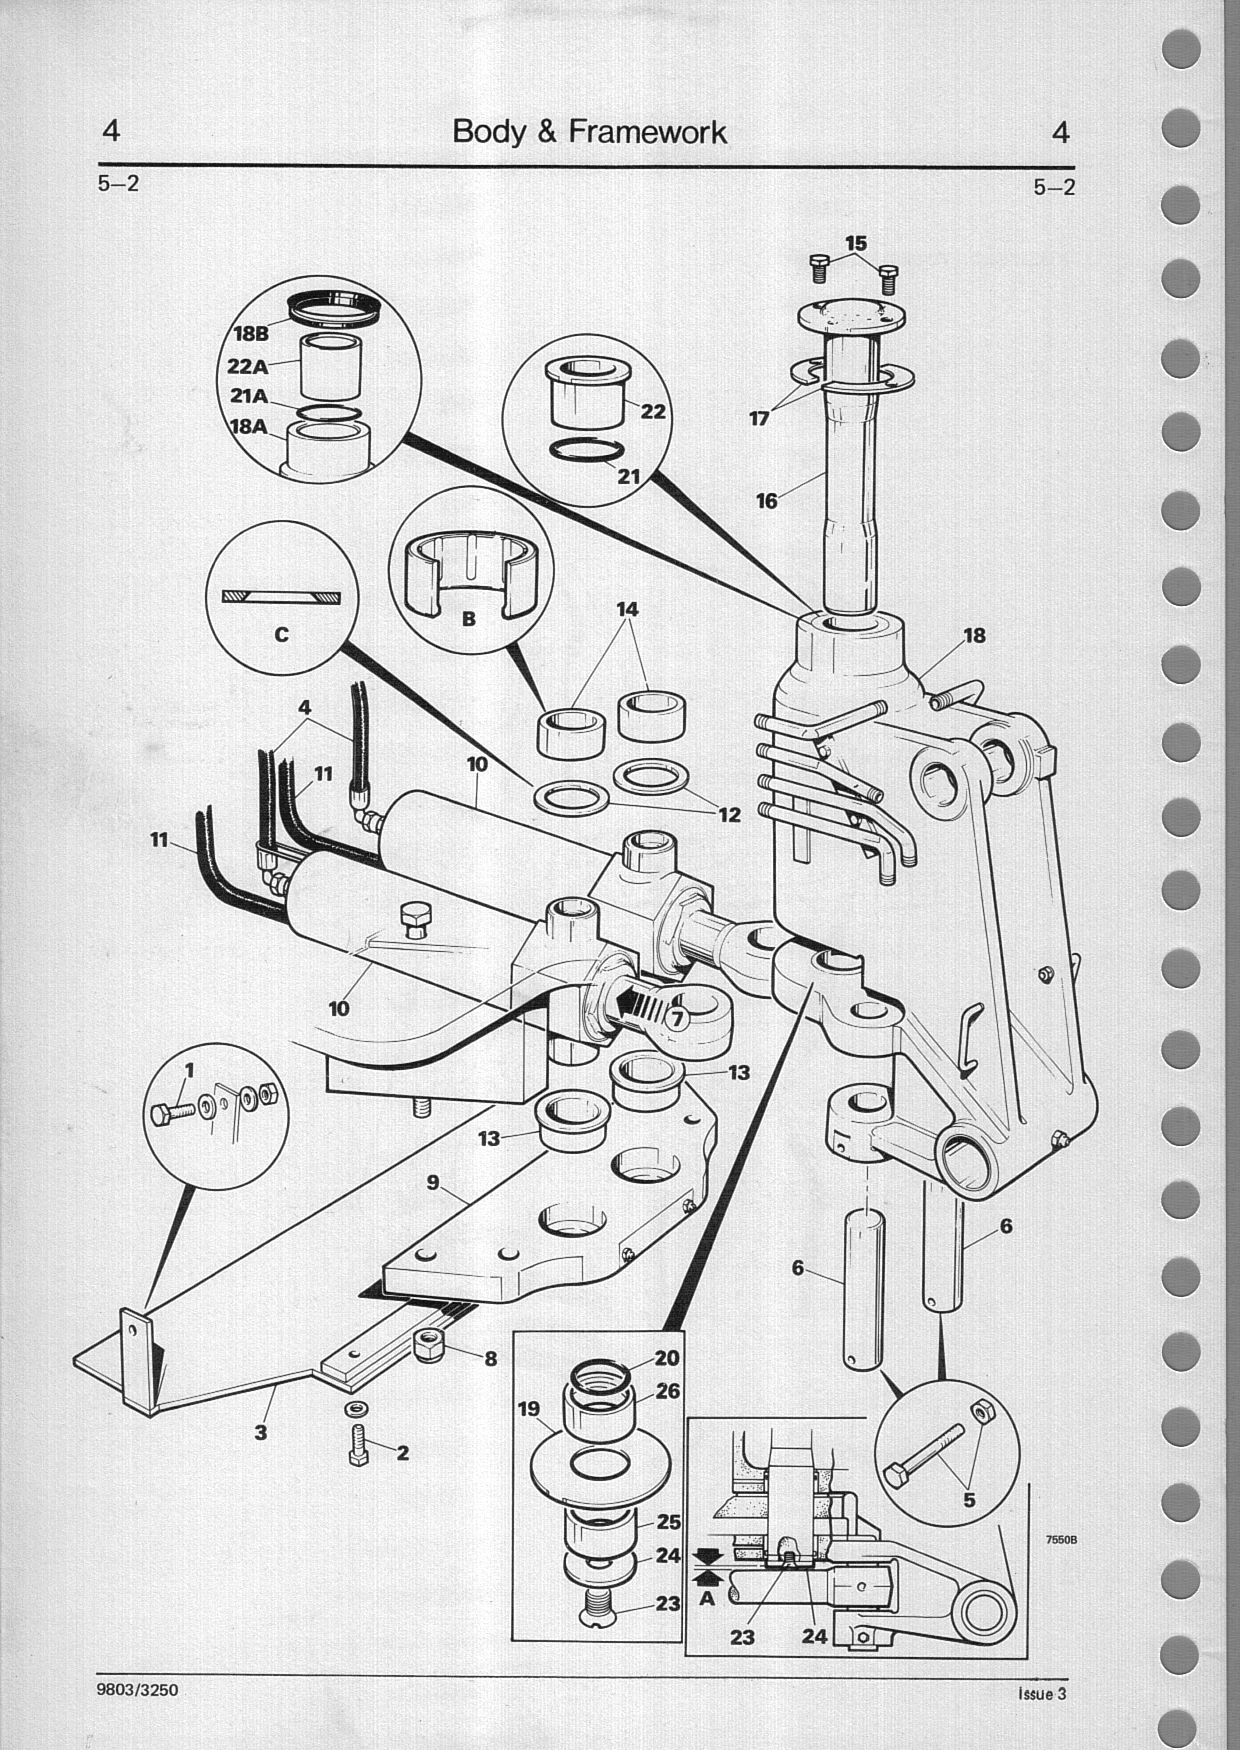 Jcb 520 40 Service Manual Photo Trend Ideas Wiring Diagram Boom Get Free Image About